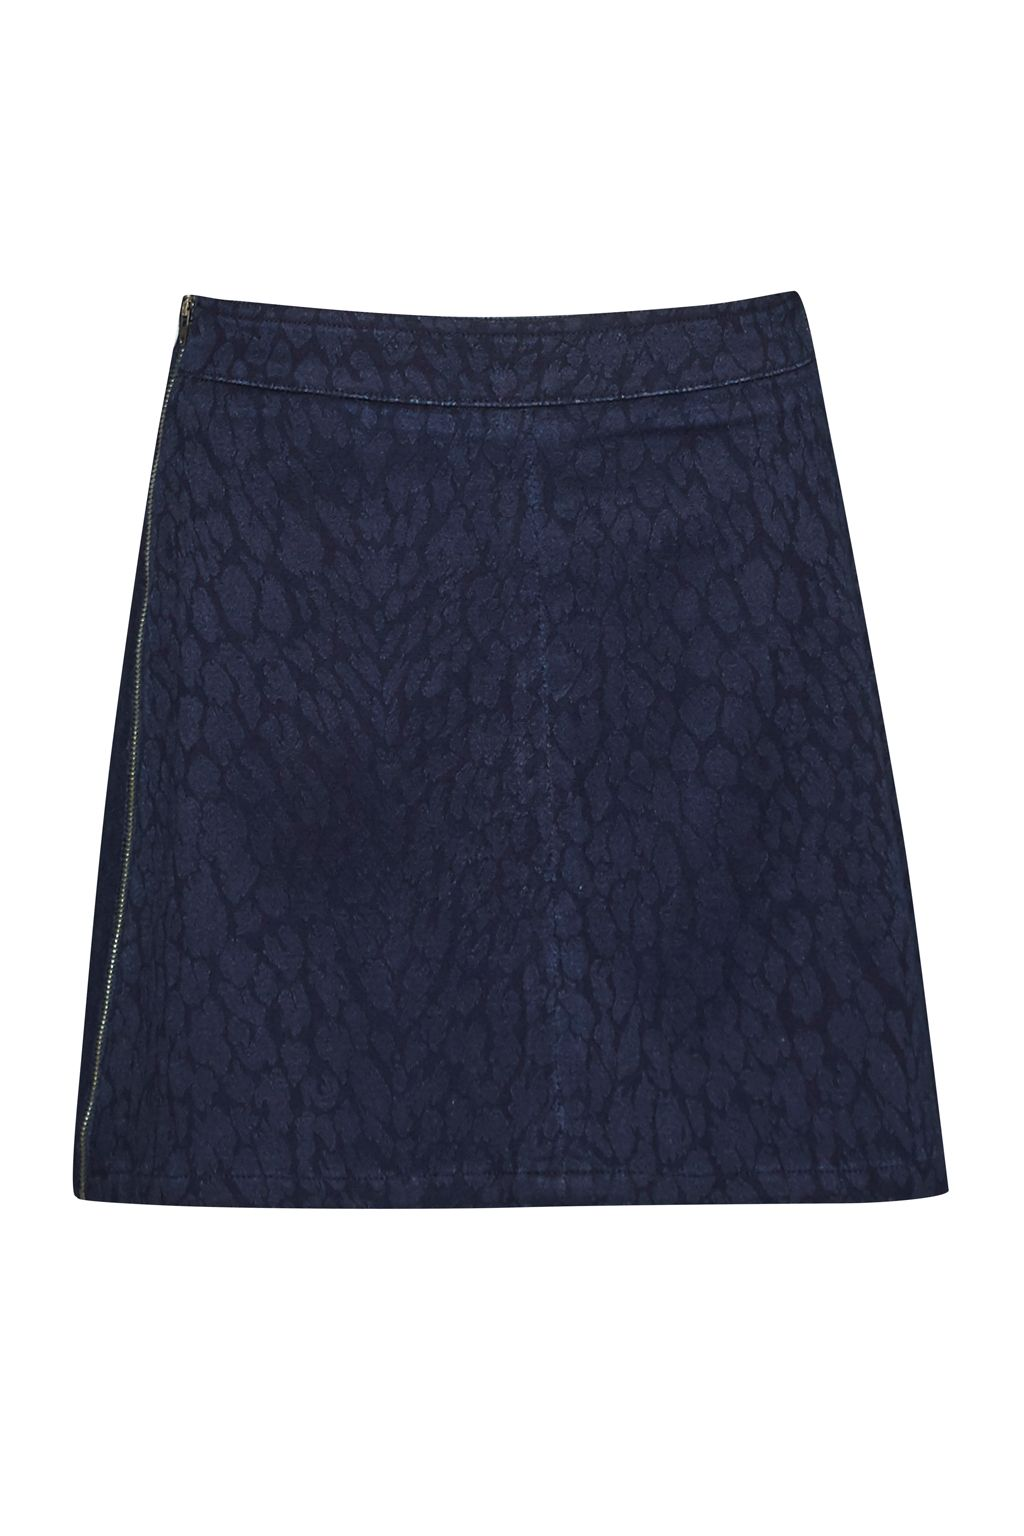 French Connection Animal Jacquard Denim Mini Skirt Navy